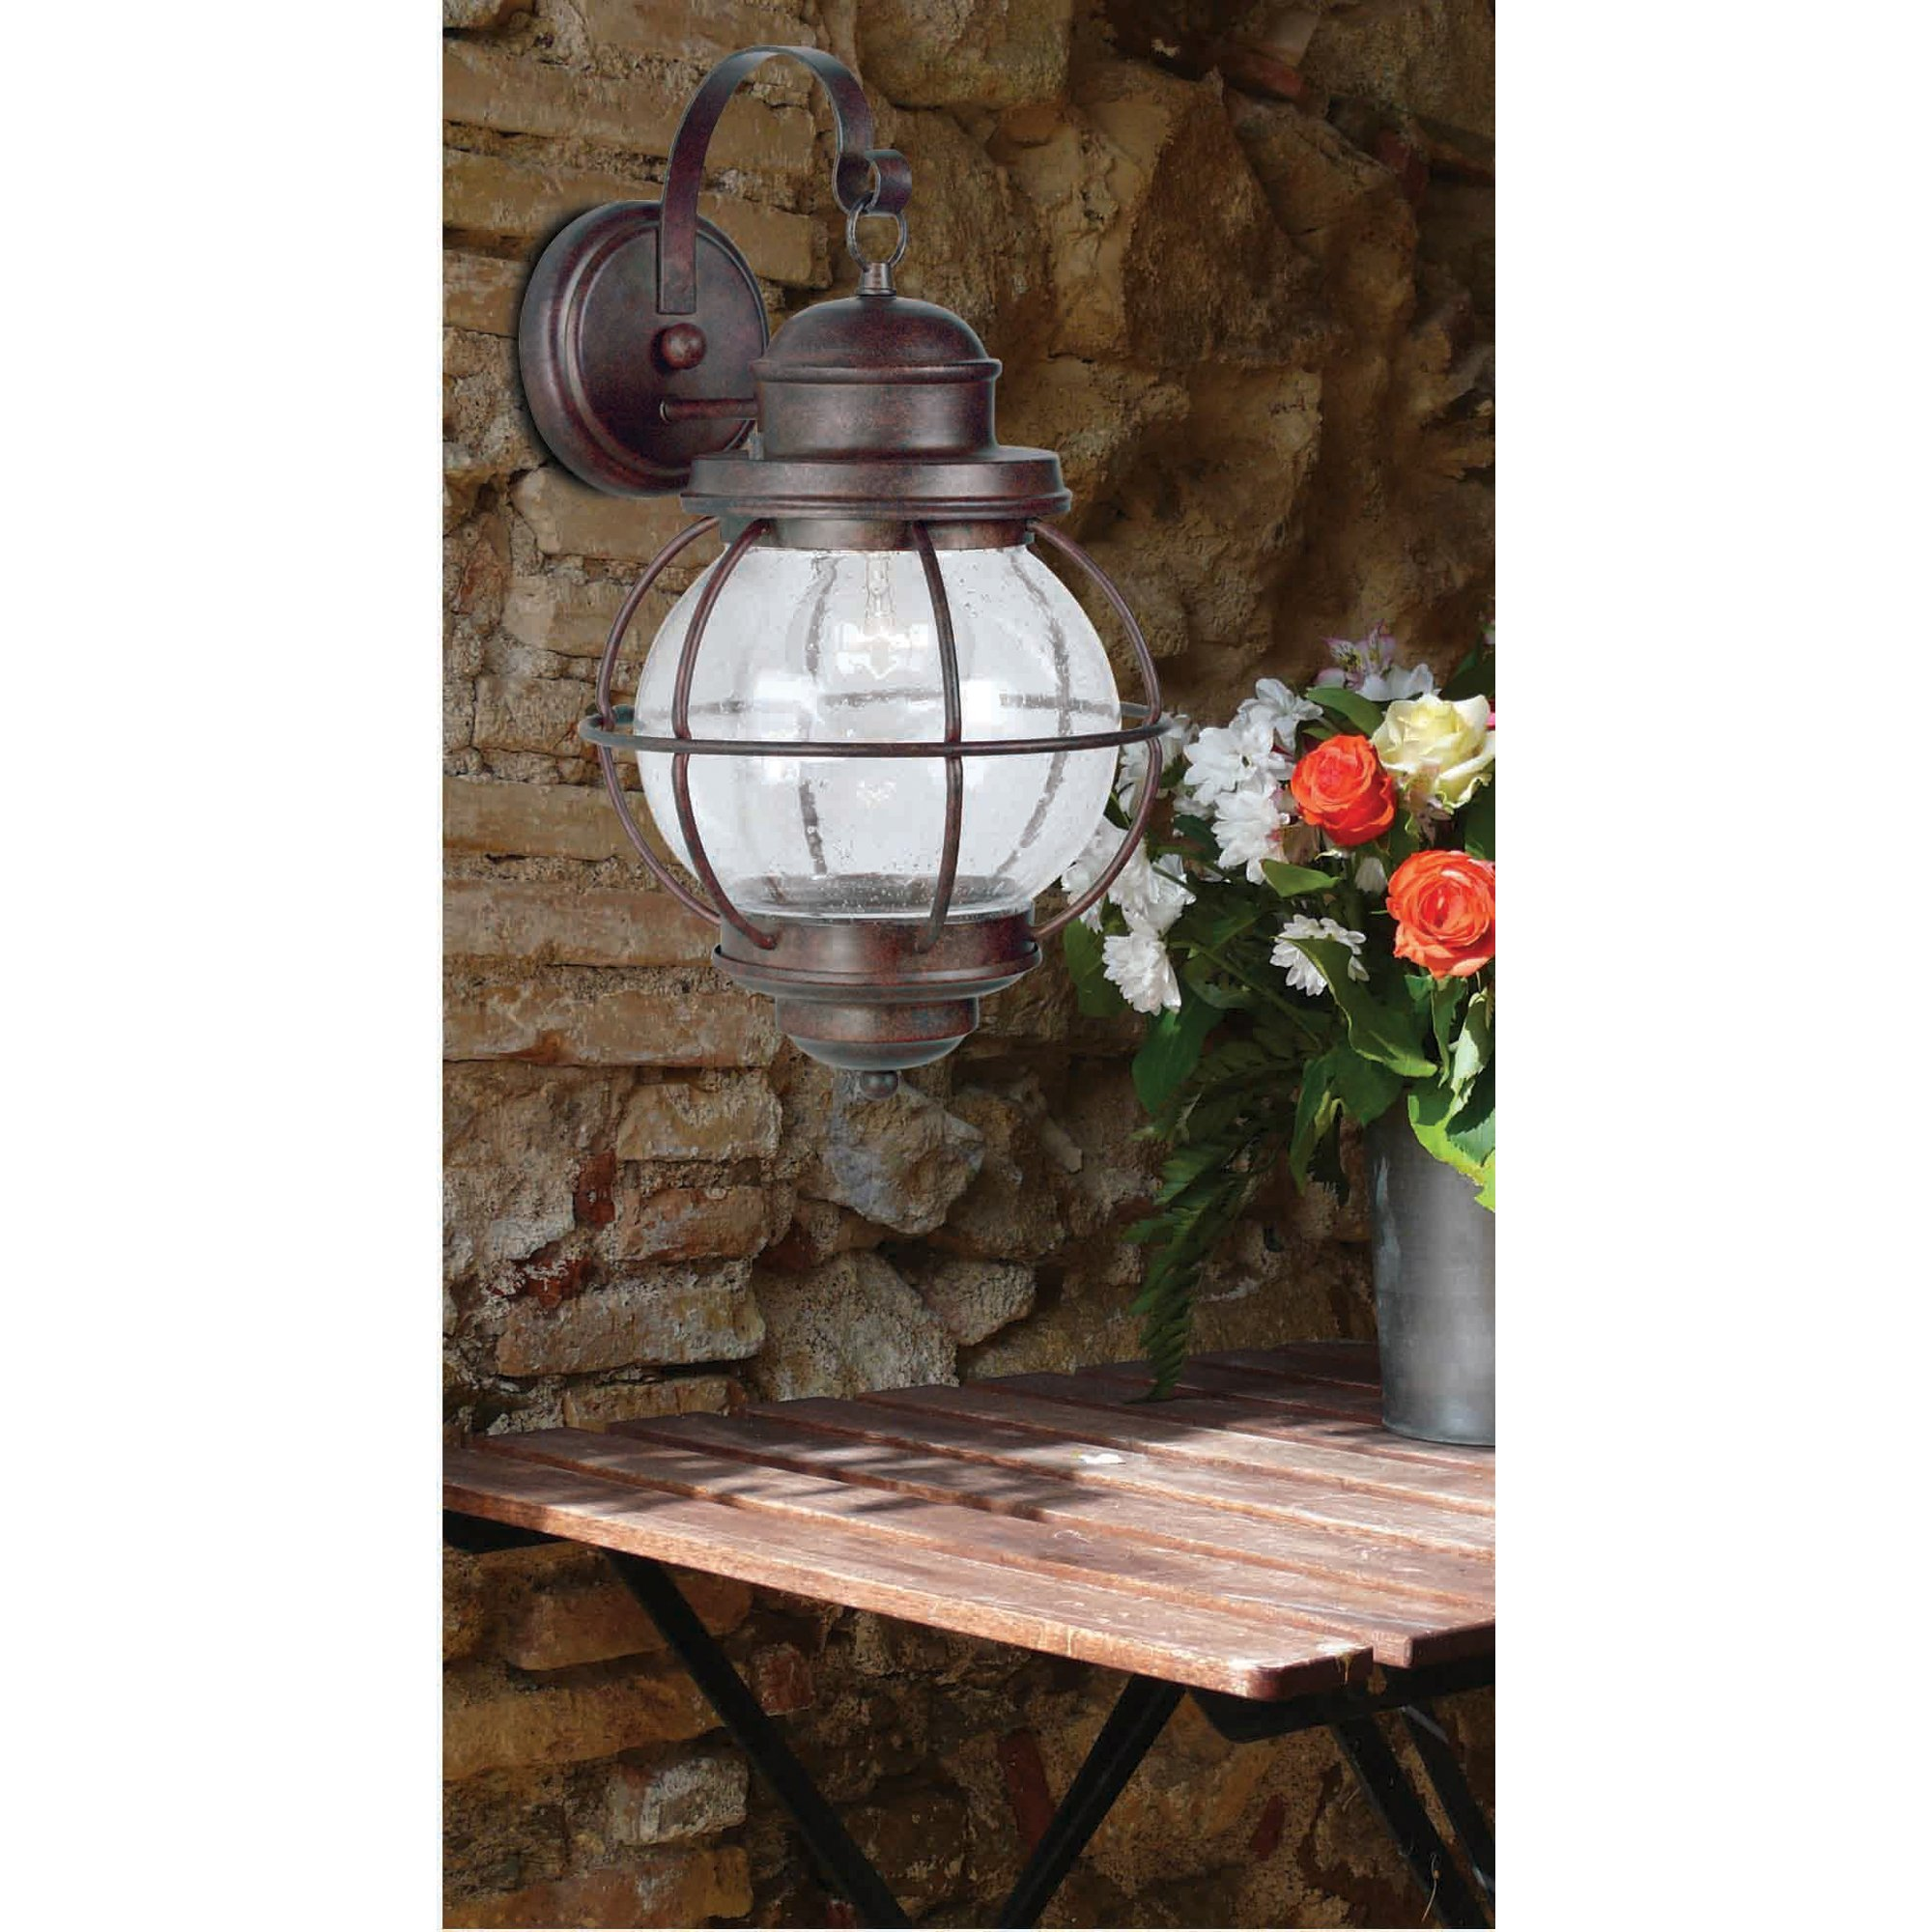 Kenroy Home 90963GC Hatteras Large Wall Lantern, Blackened Gilded Copper Finish by Kenroy Home